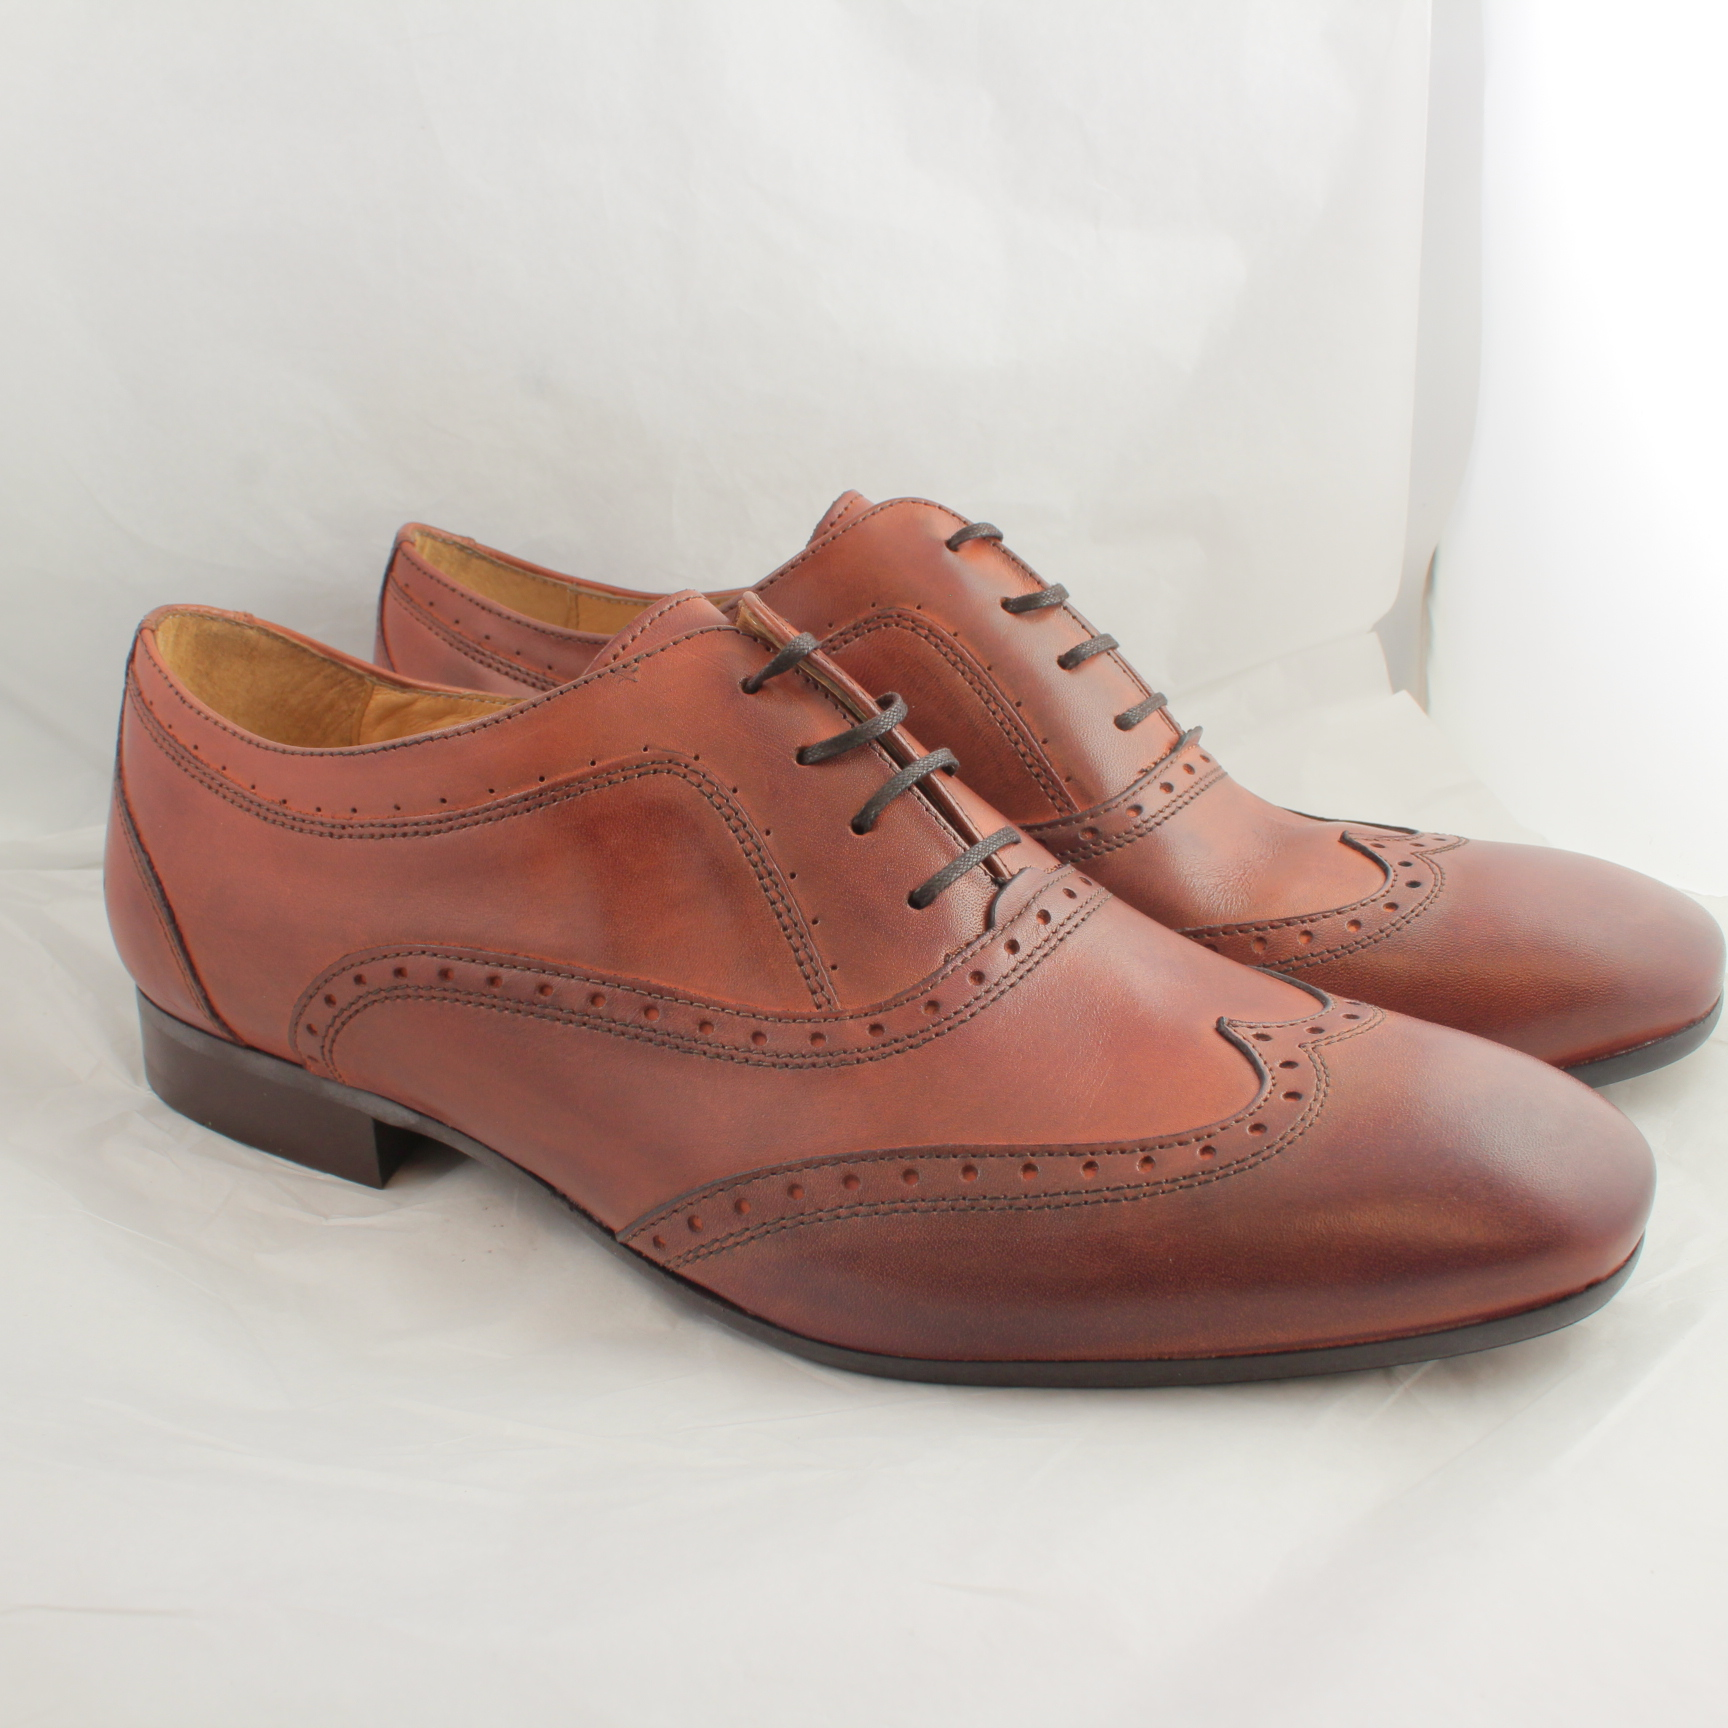 mens h by hudson leather lace up formal shoes uk size